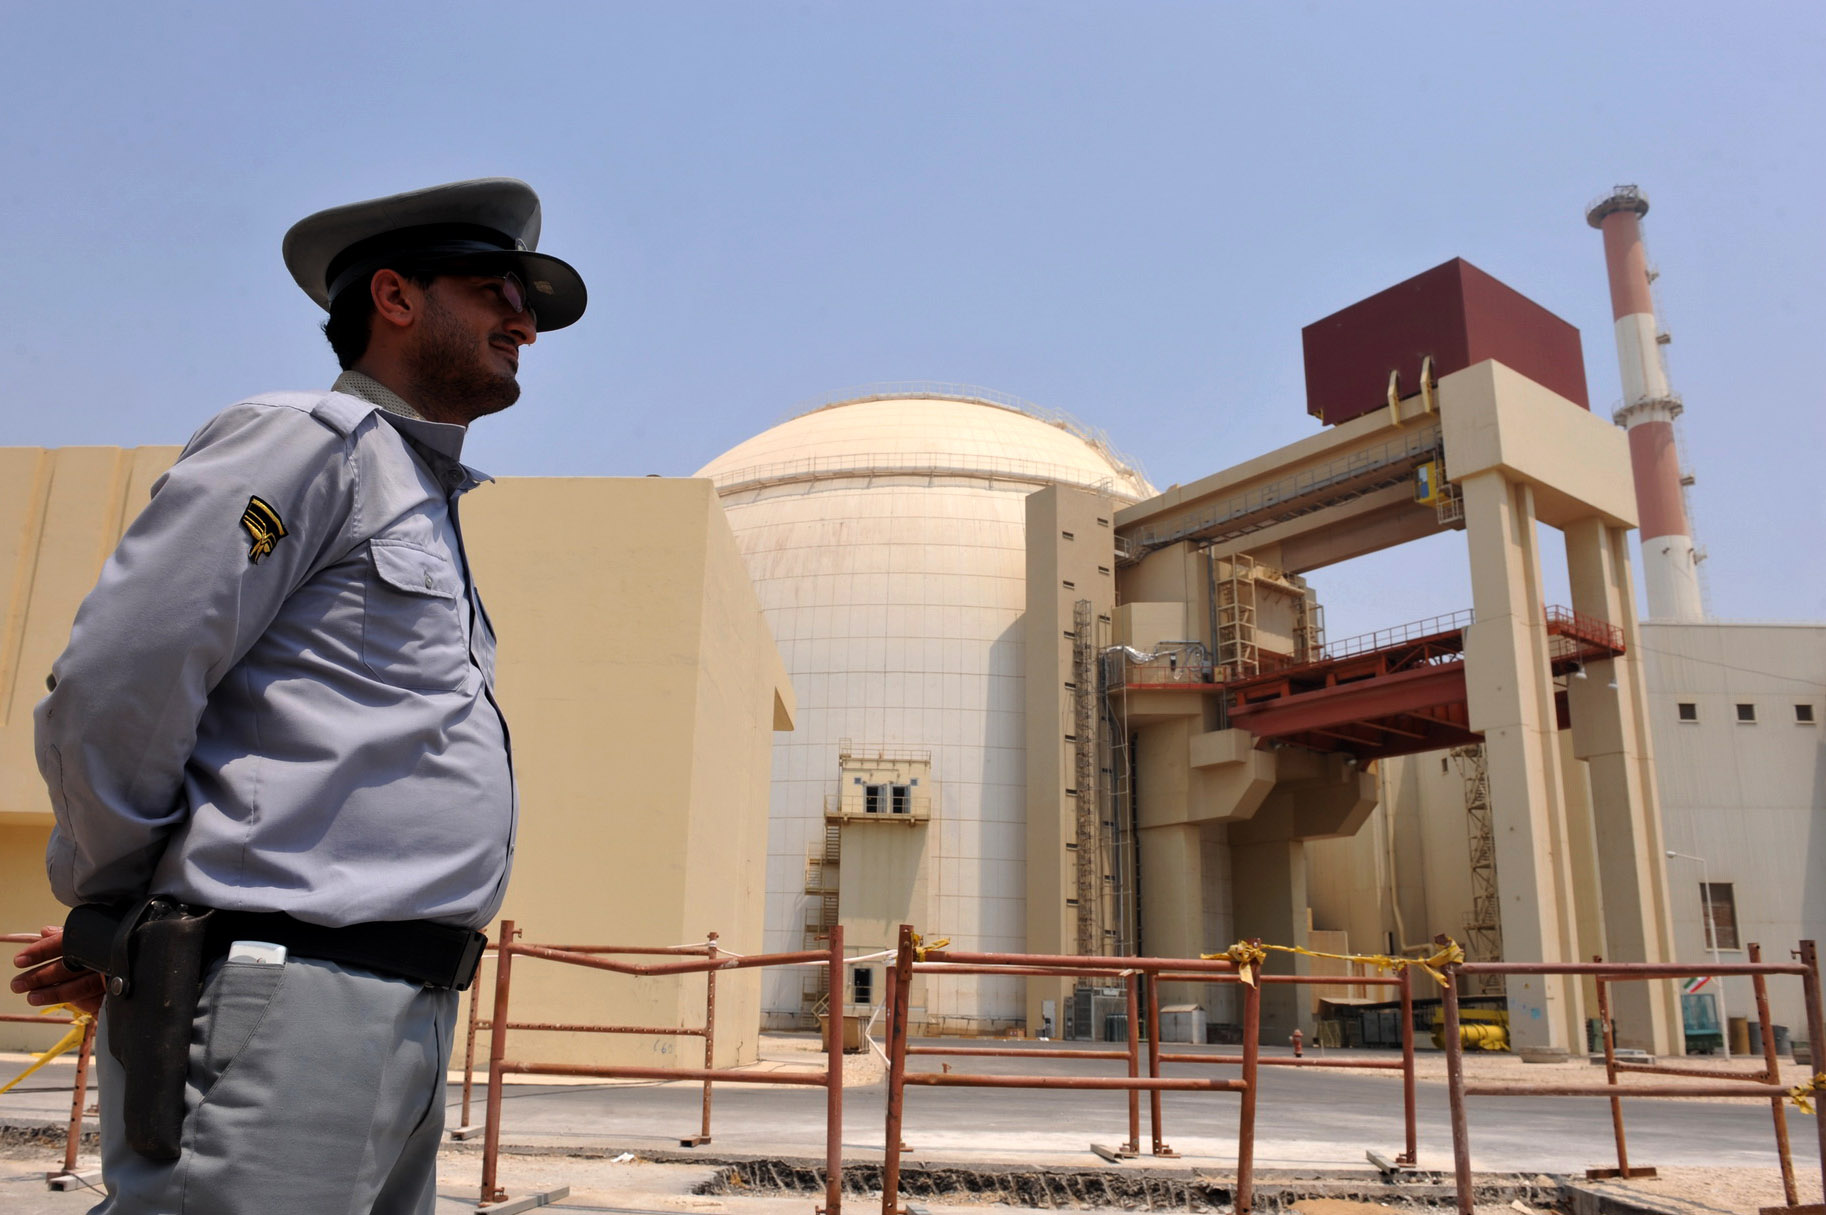 This handout image supplied by the IIPA (Iran International Photo Agency) shows a view of the reactor building at the Russian-built Bushehr nuclear power plant as the first fuel is loaded, Aug. 21, 2010 in Bushehr, southern Iran. (Photo by IIPA via Getty Images)